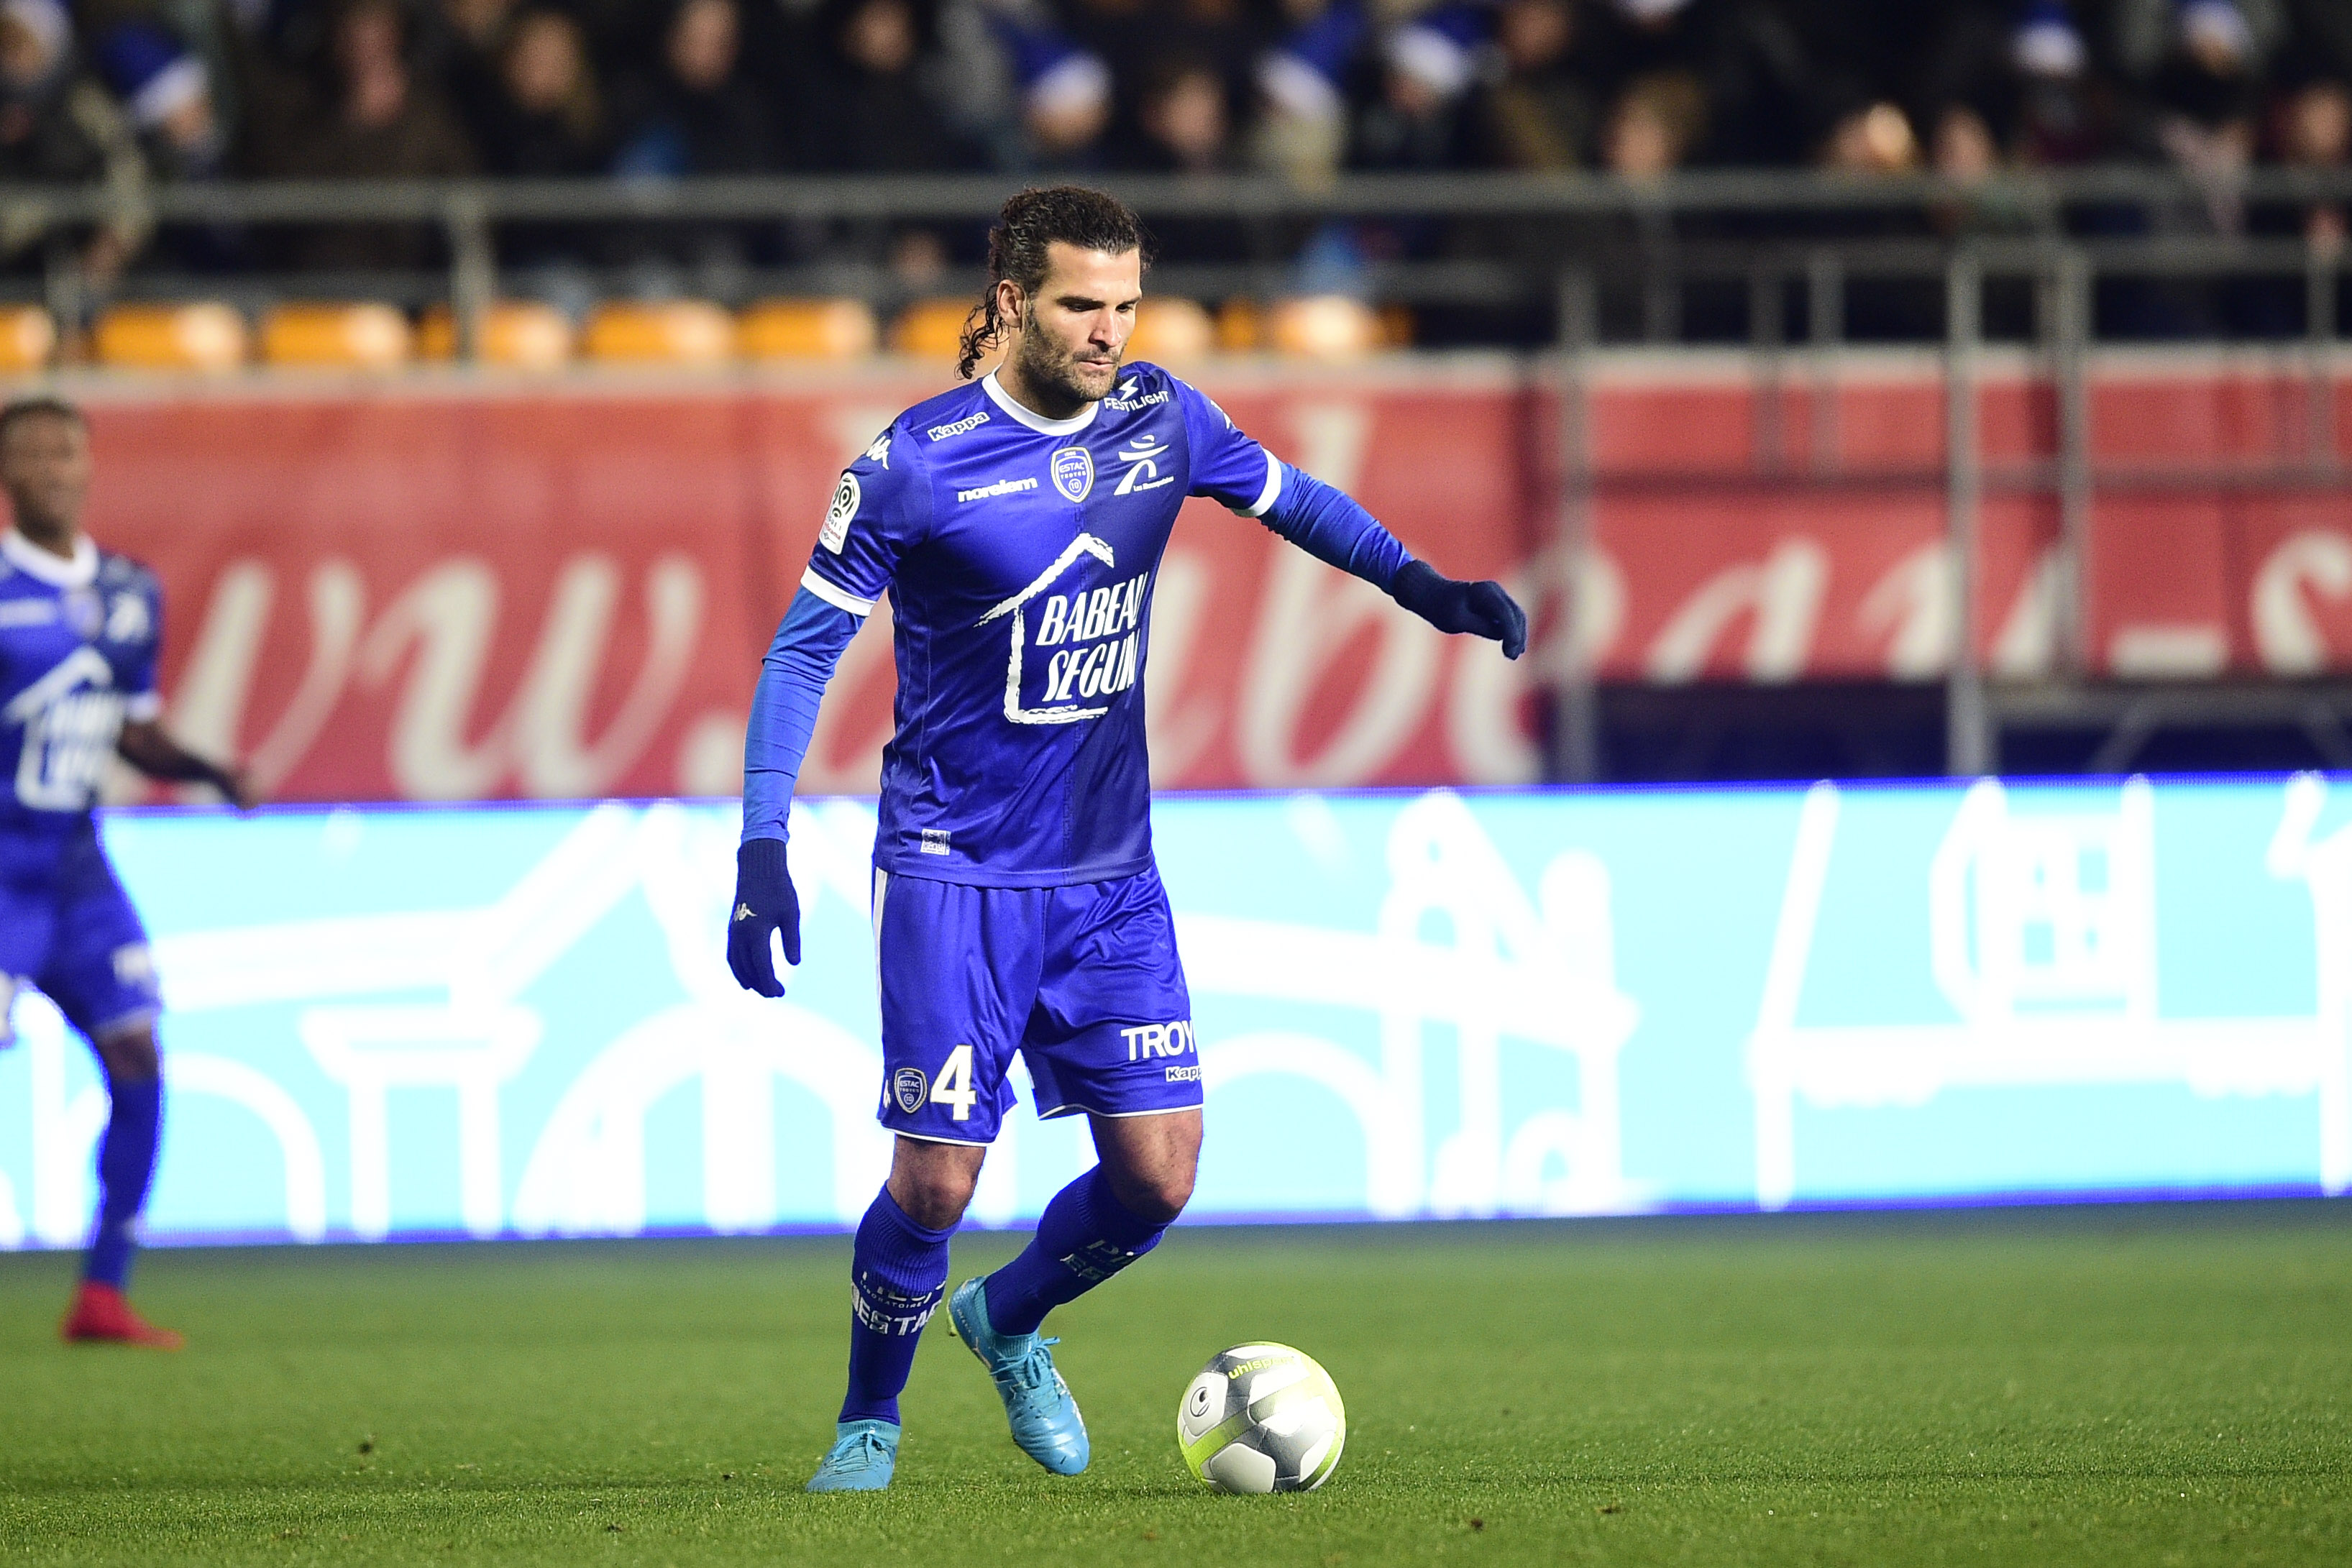 Football - Ligue 1 - Ligue 1 : Troyes - Dijon en direct